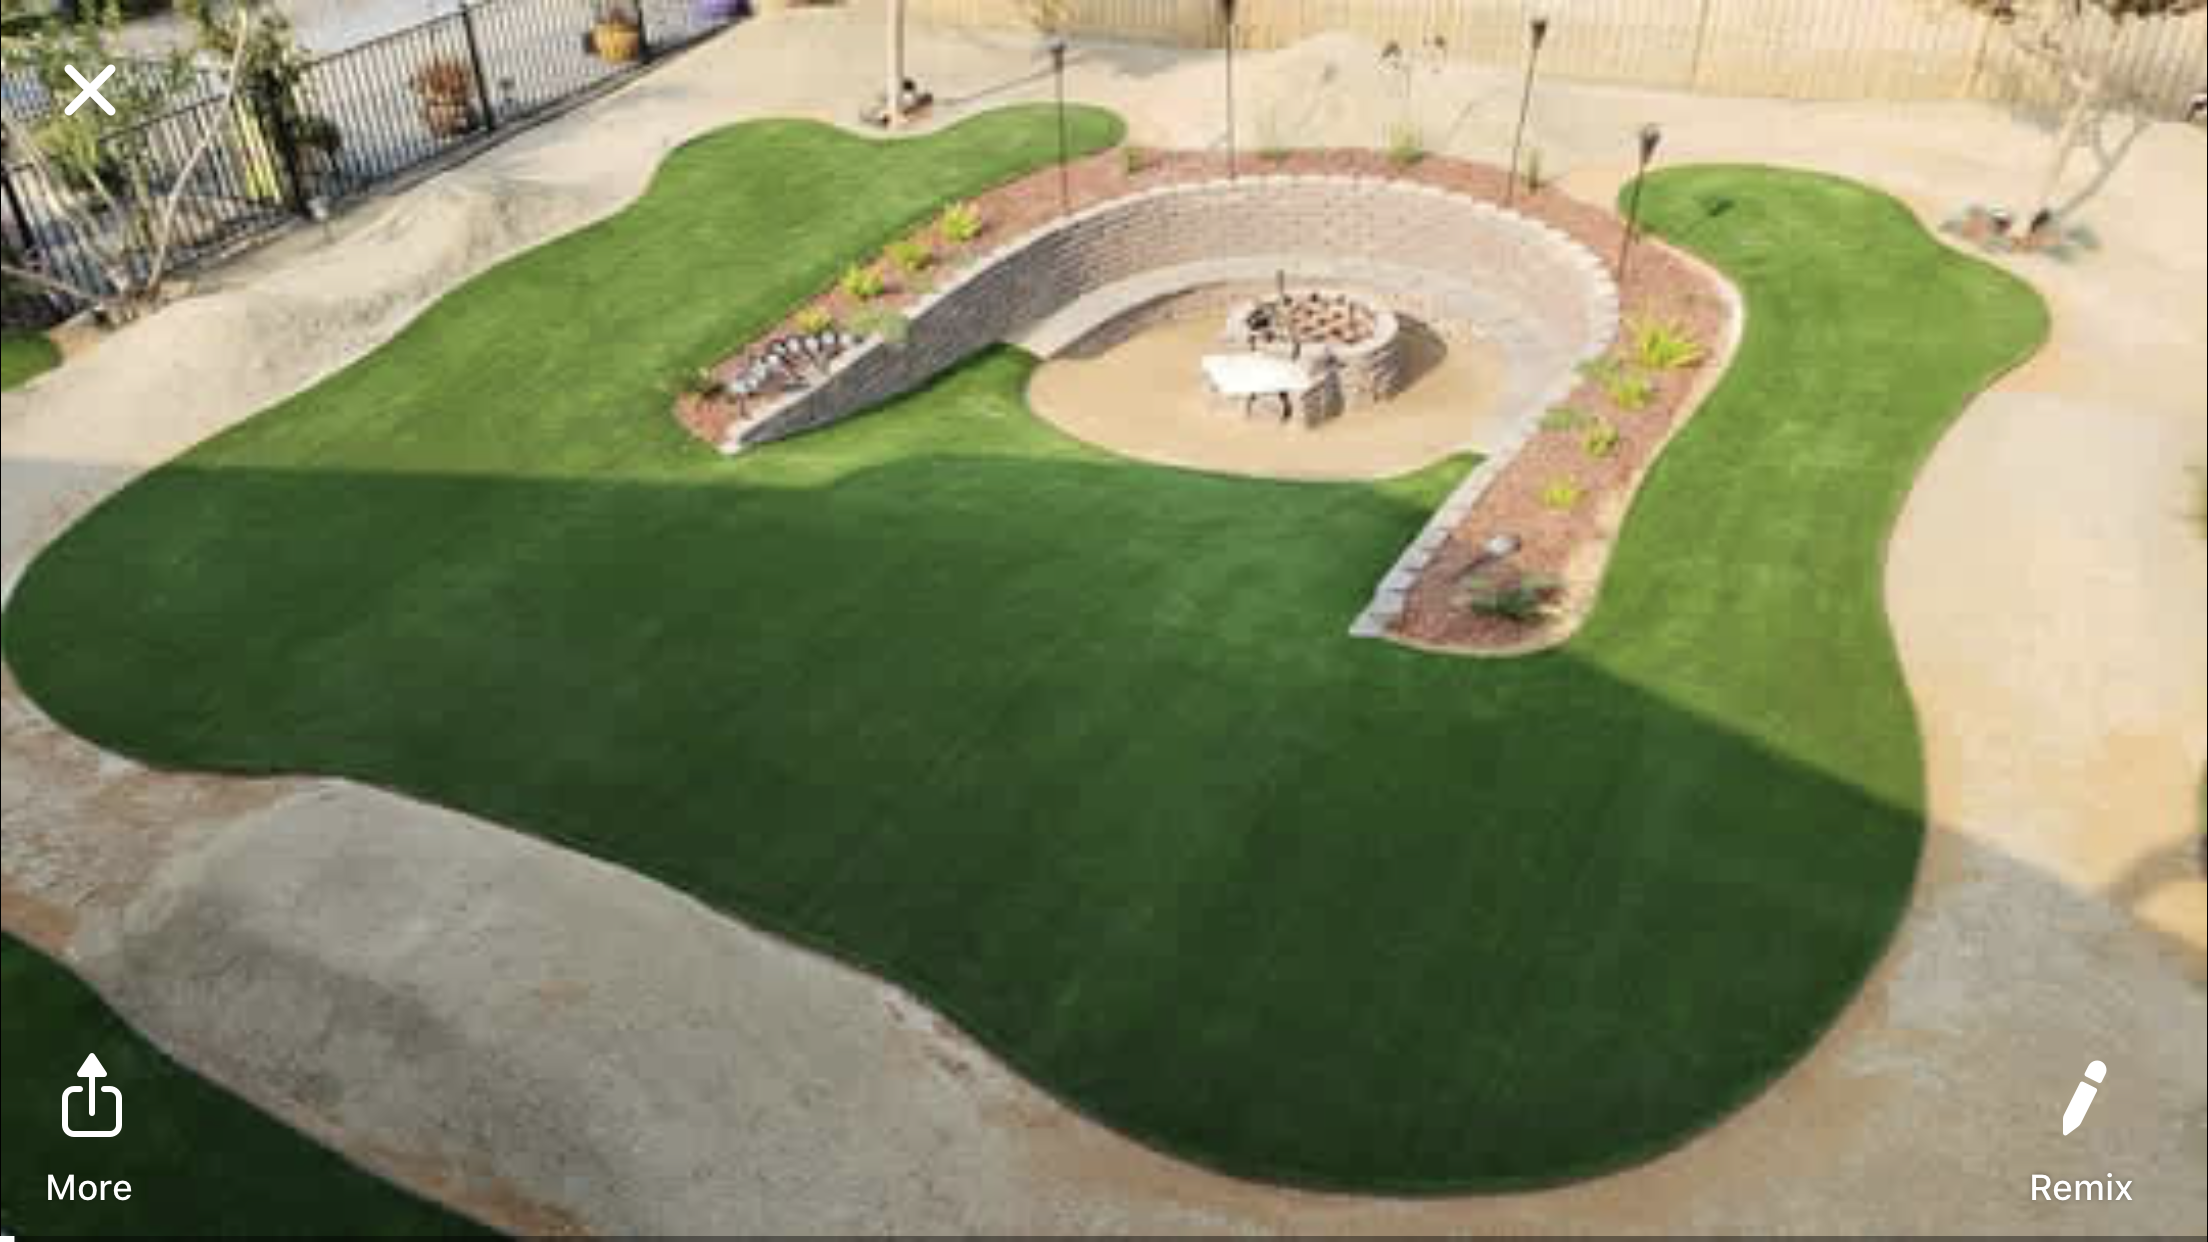 Riviera Monterey-84 artificial turf,synthetic turf,artificial turf installation,how to install artificial turf,used artificial turf,high quality artificial grass,fake grass for yard,backyard turf,turf backyard,turf yard,fake grass for backyard